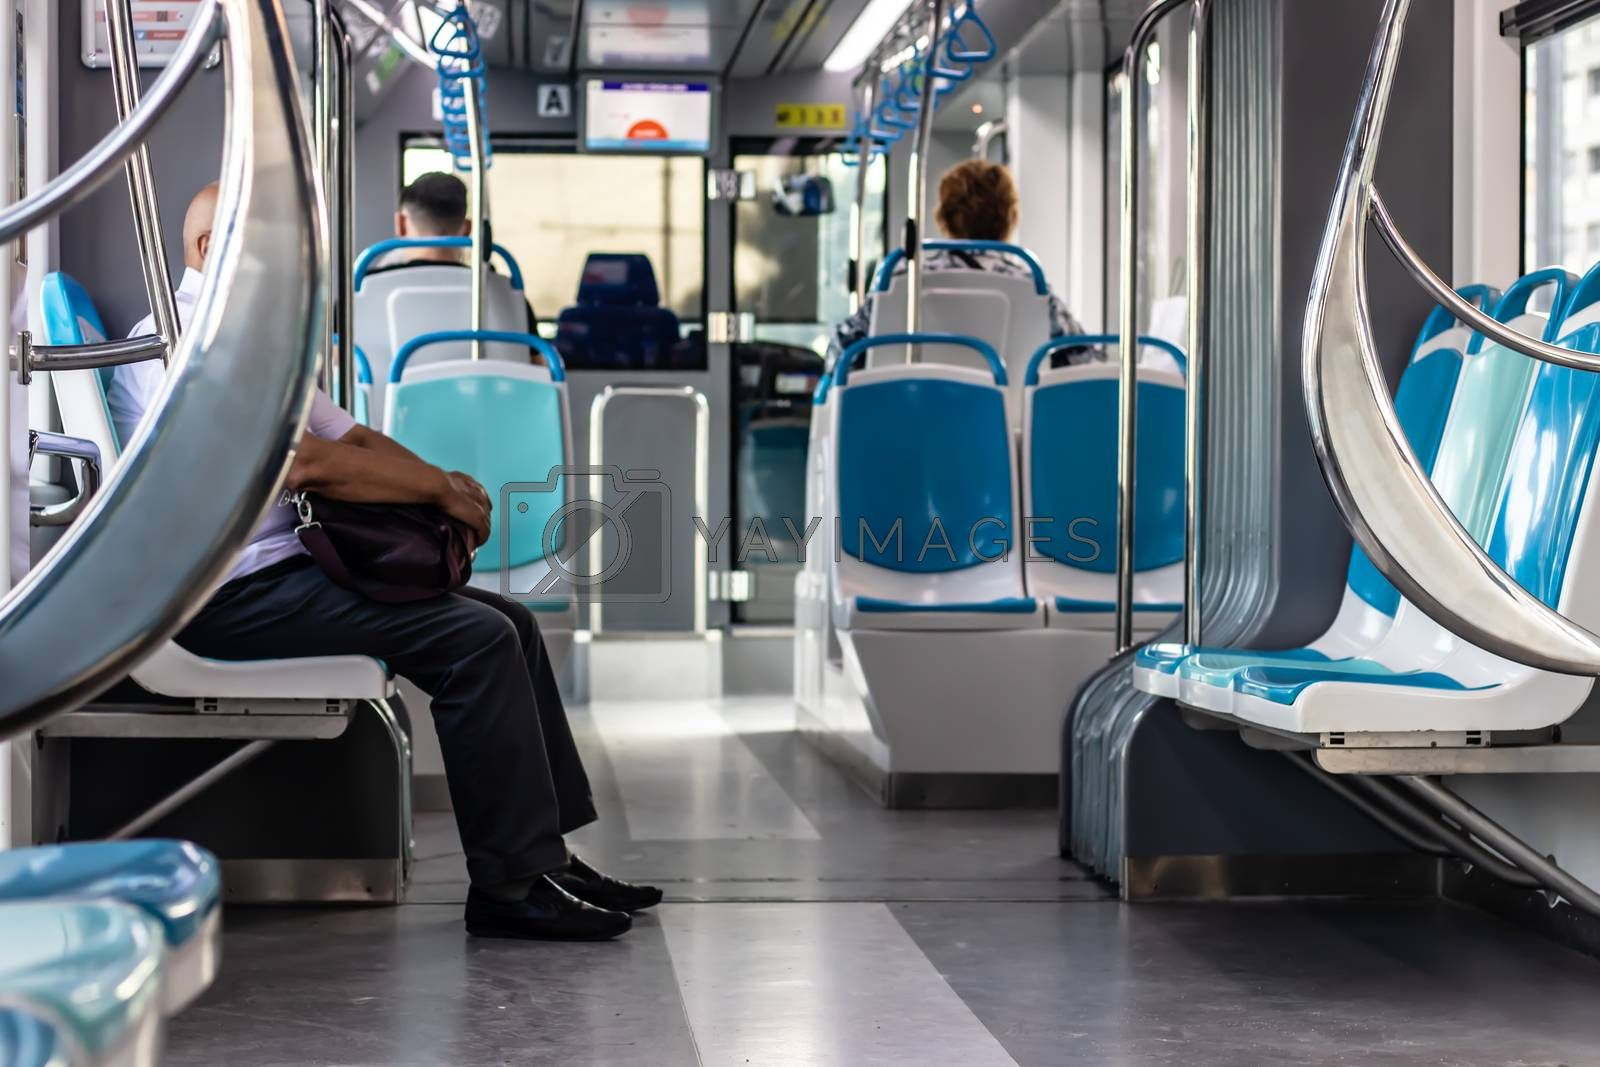 a sneak shoot from a tram with few peoples and empty seats - there is no face can be recognized. photo has taken at izmir/turkey.